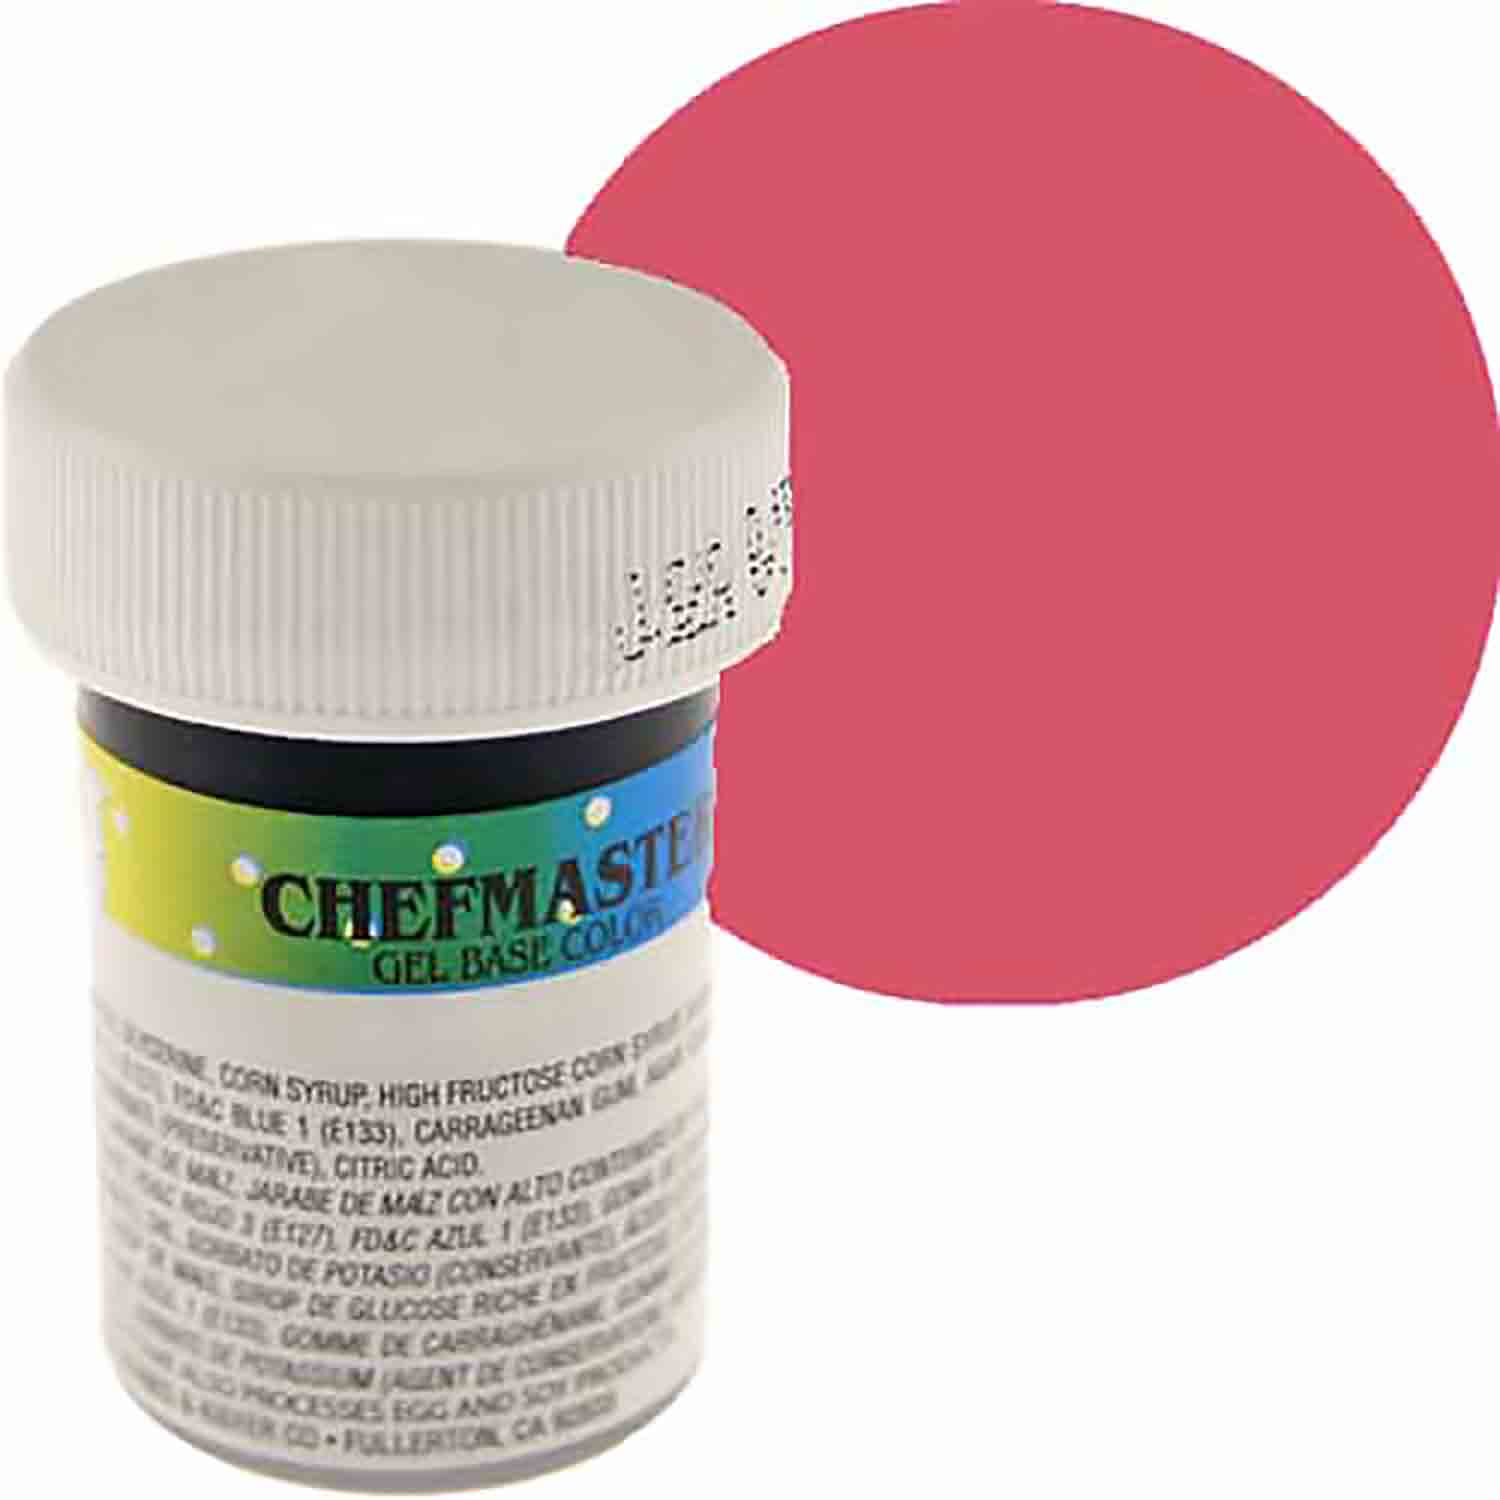 Deep Pink Chefmaster Food Color Gel (Old Item # 41-2306)